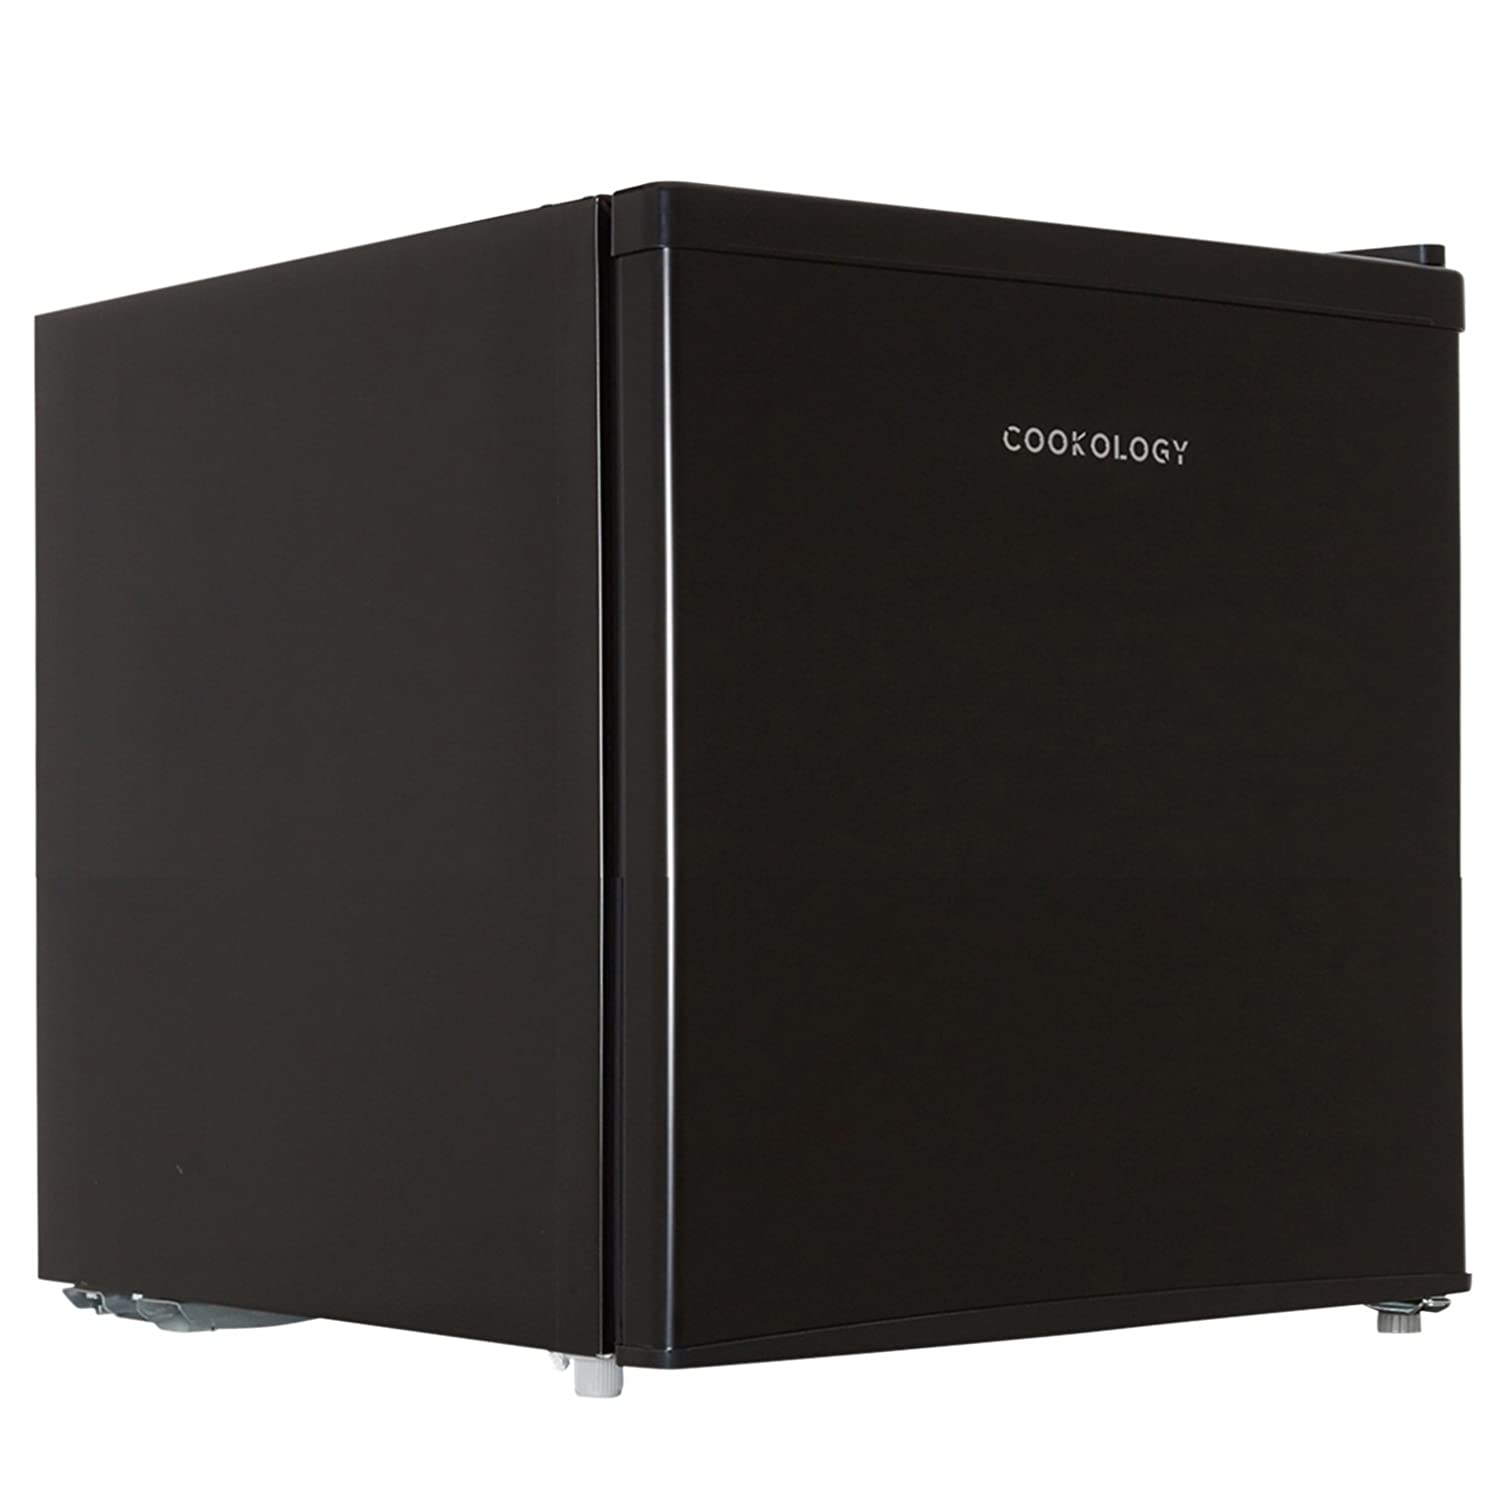 Cookology Table Top Mini Fridge in Black, A+ Rated, 46 Litre Refrigerator with Ice Box | Fast Delivery Service [Energy Class A+] MFR45BK